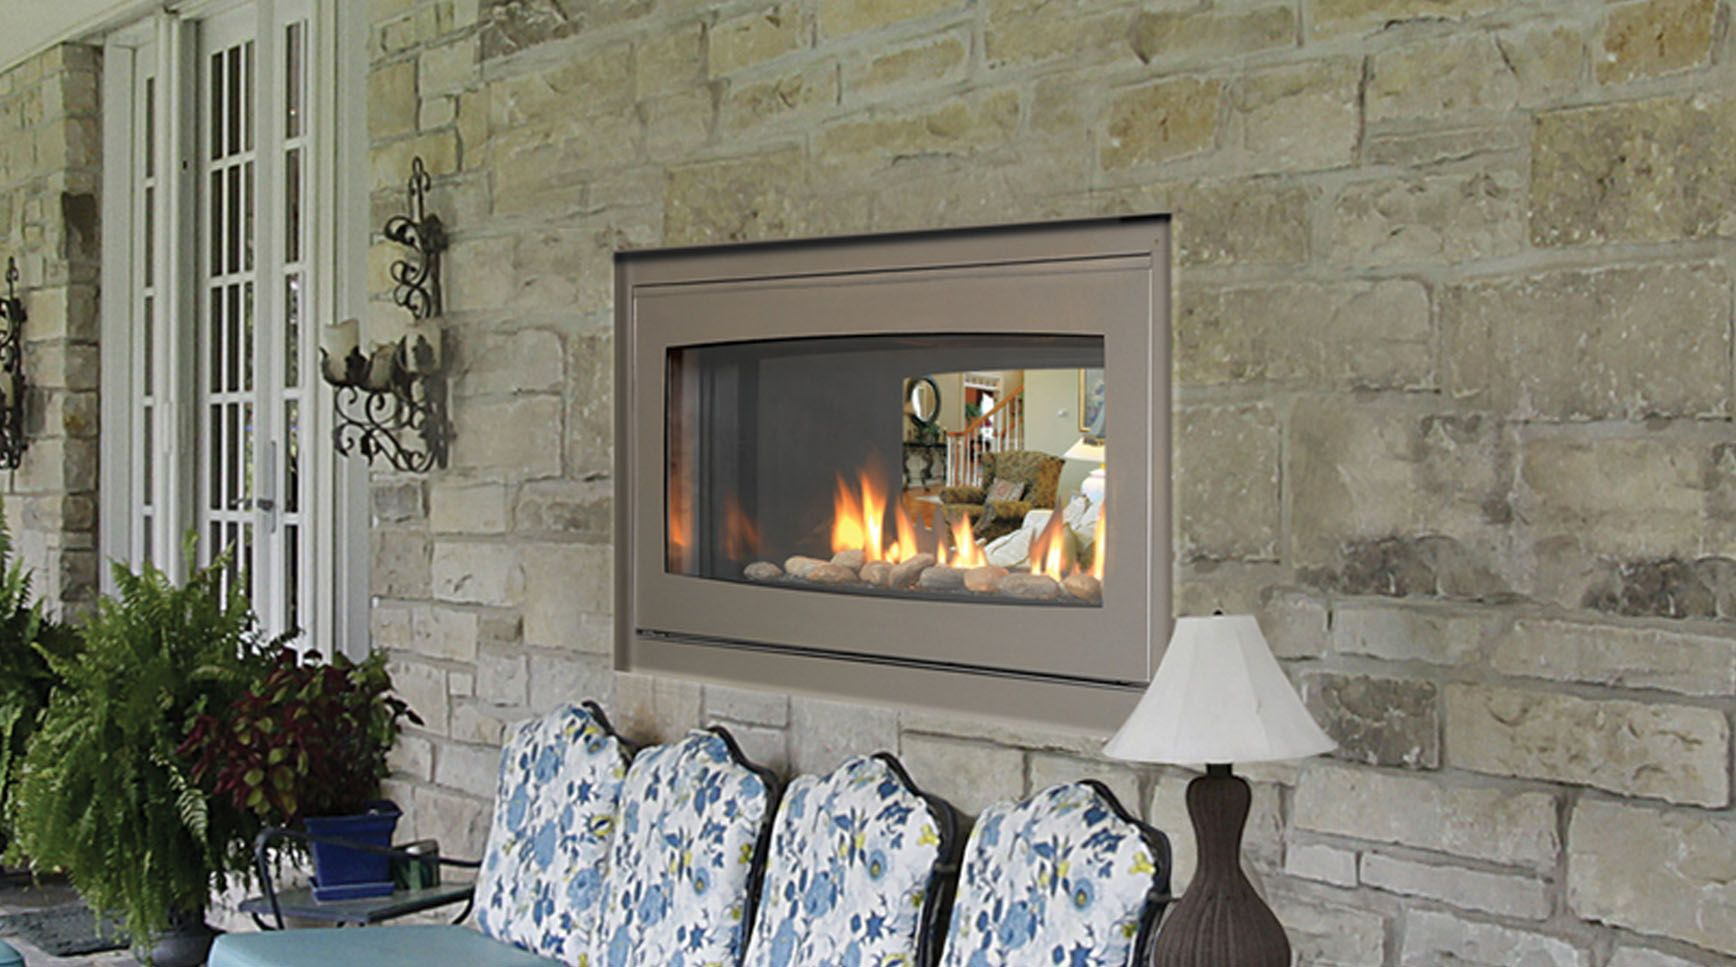 Fireplace Outdoor Vent Cover What Is The Best Interior Paint Check More At Htt Indoor Outdoor Fireplaces Outdoor Gas Fireplace Outdoor Wood Burning Fireplace